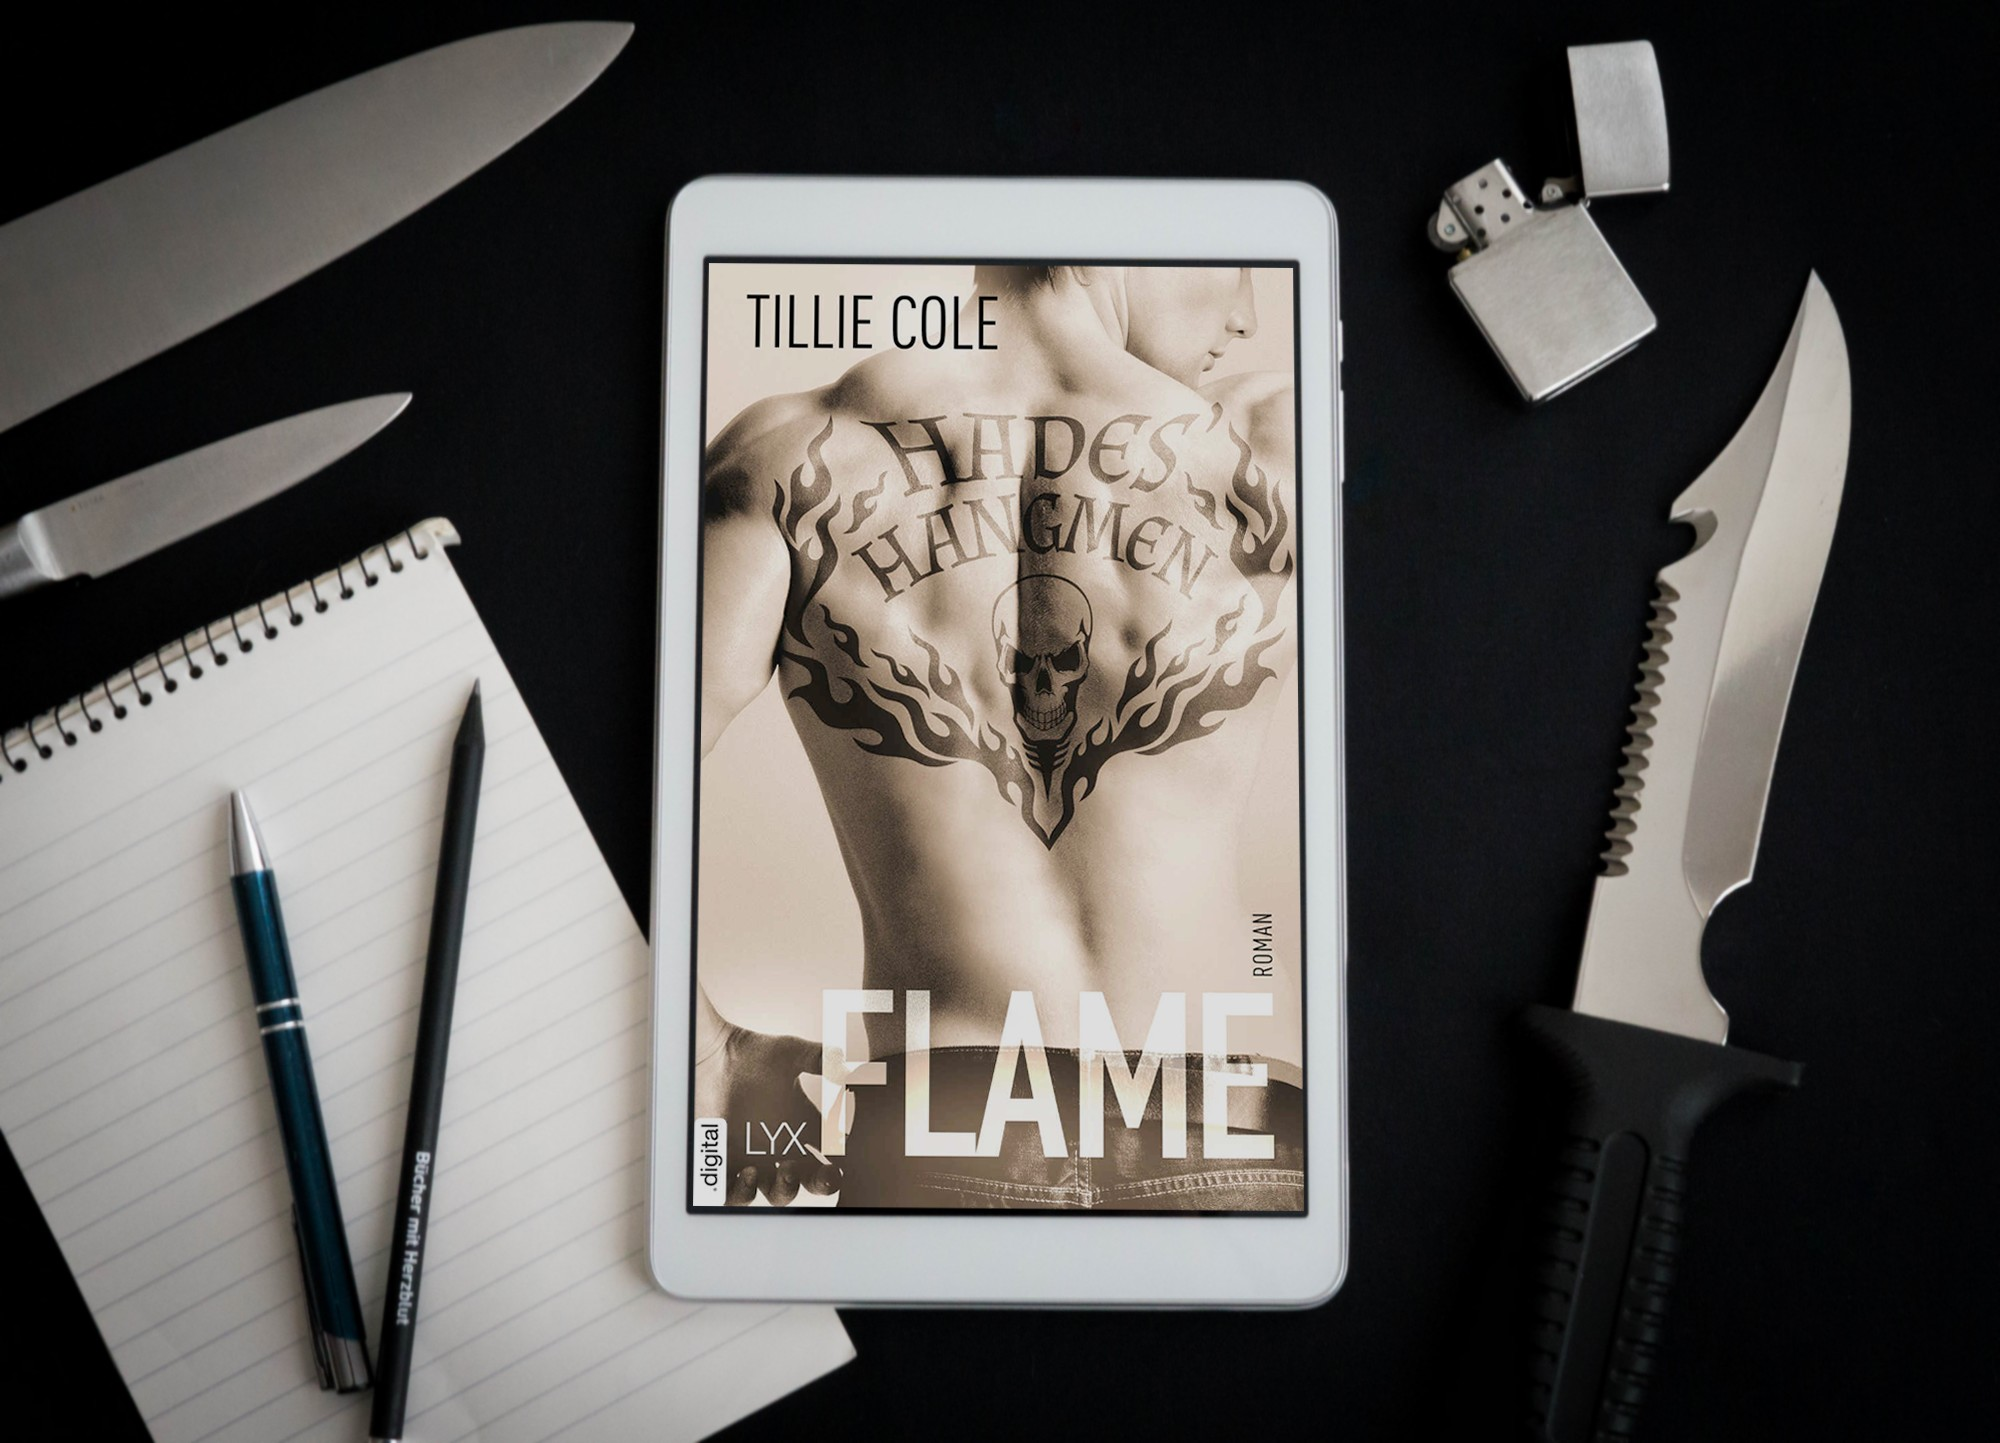 Hades' Hangmen: Flame (Band 3) – Tillie Cole graphic